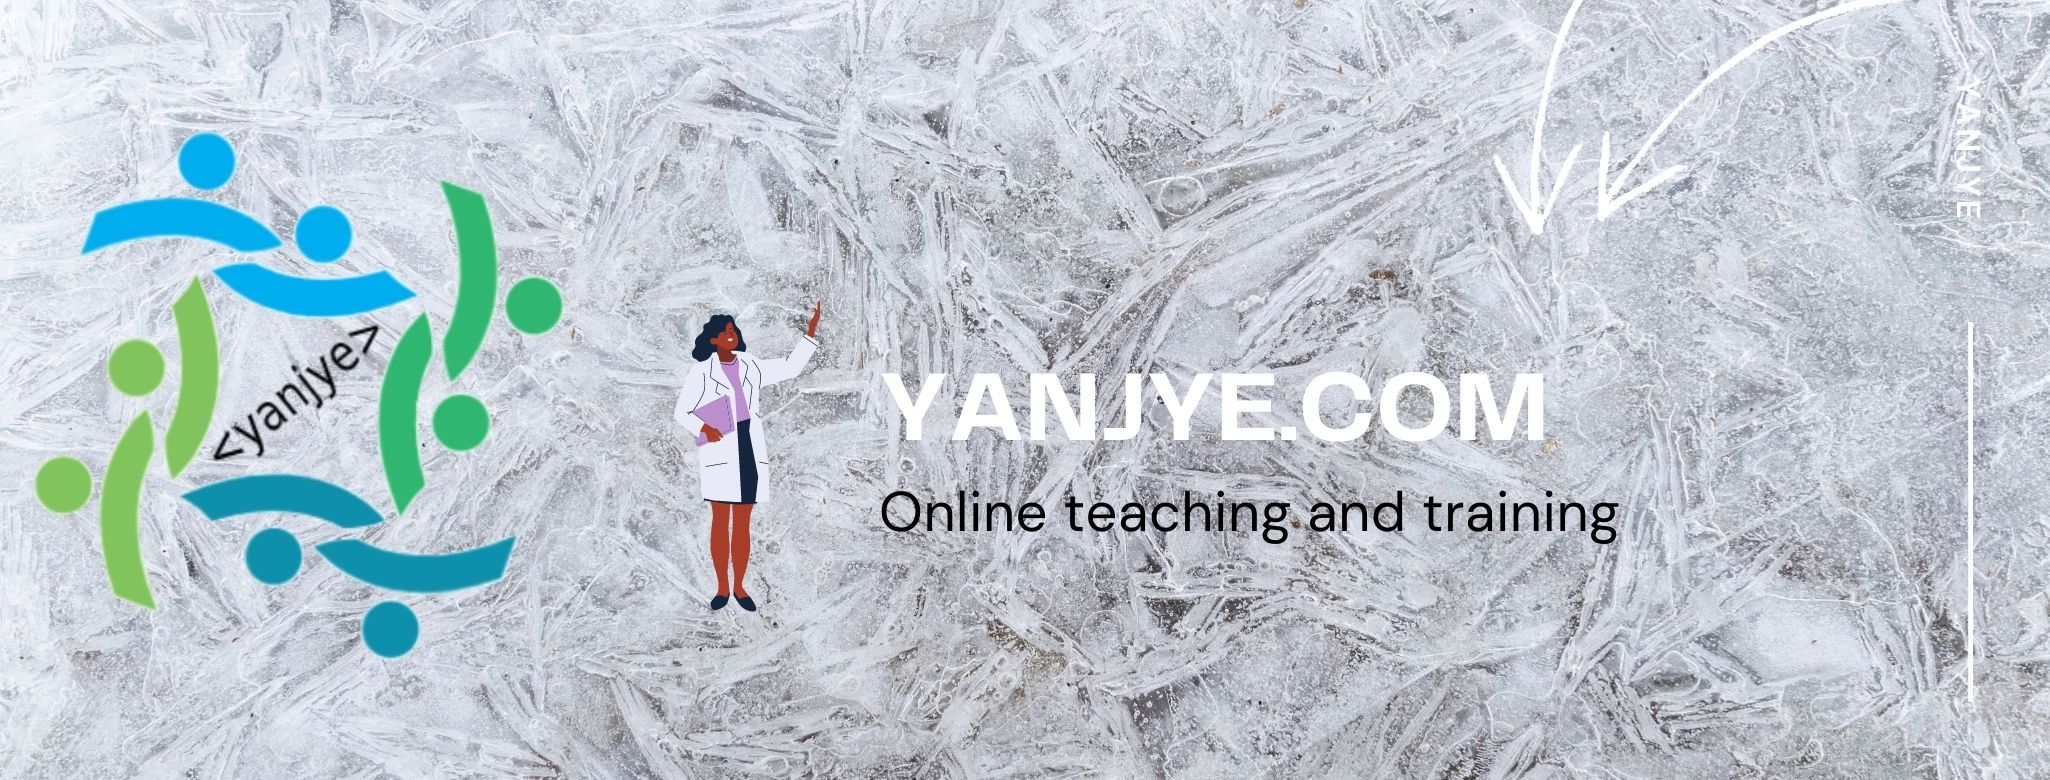 Online teaching and training